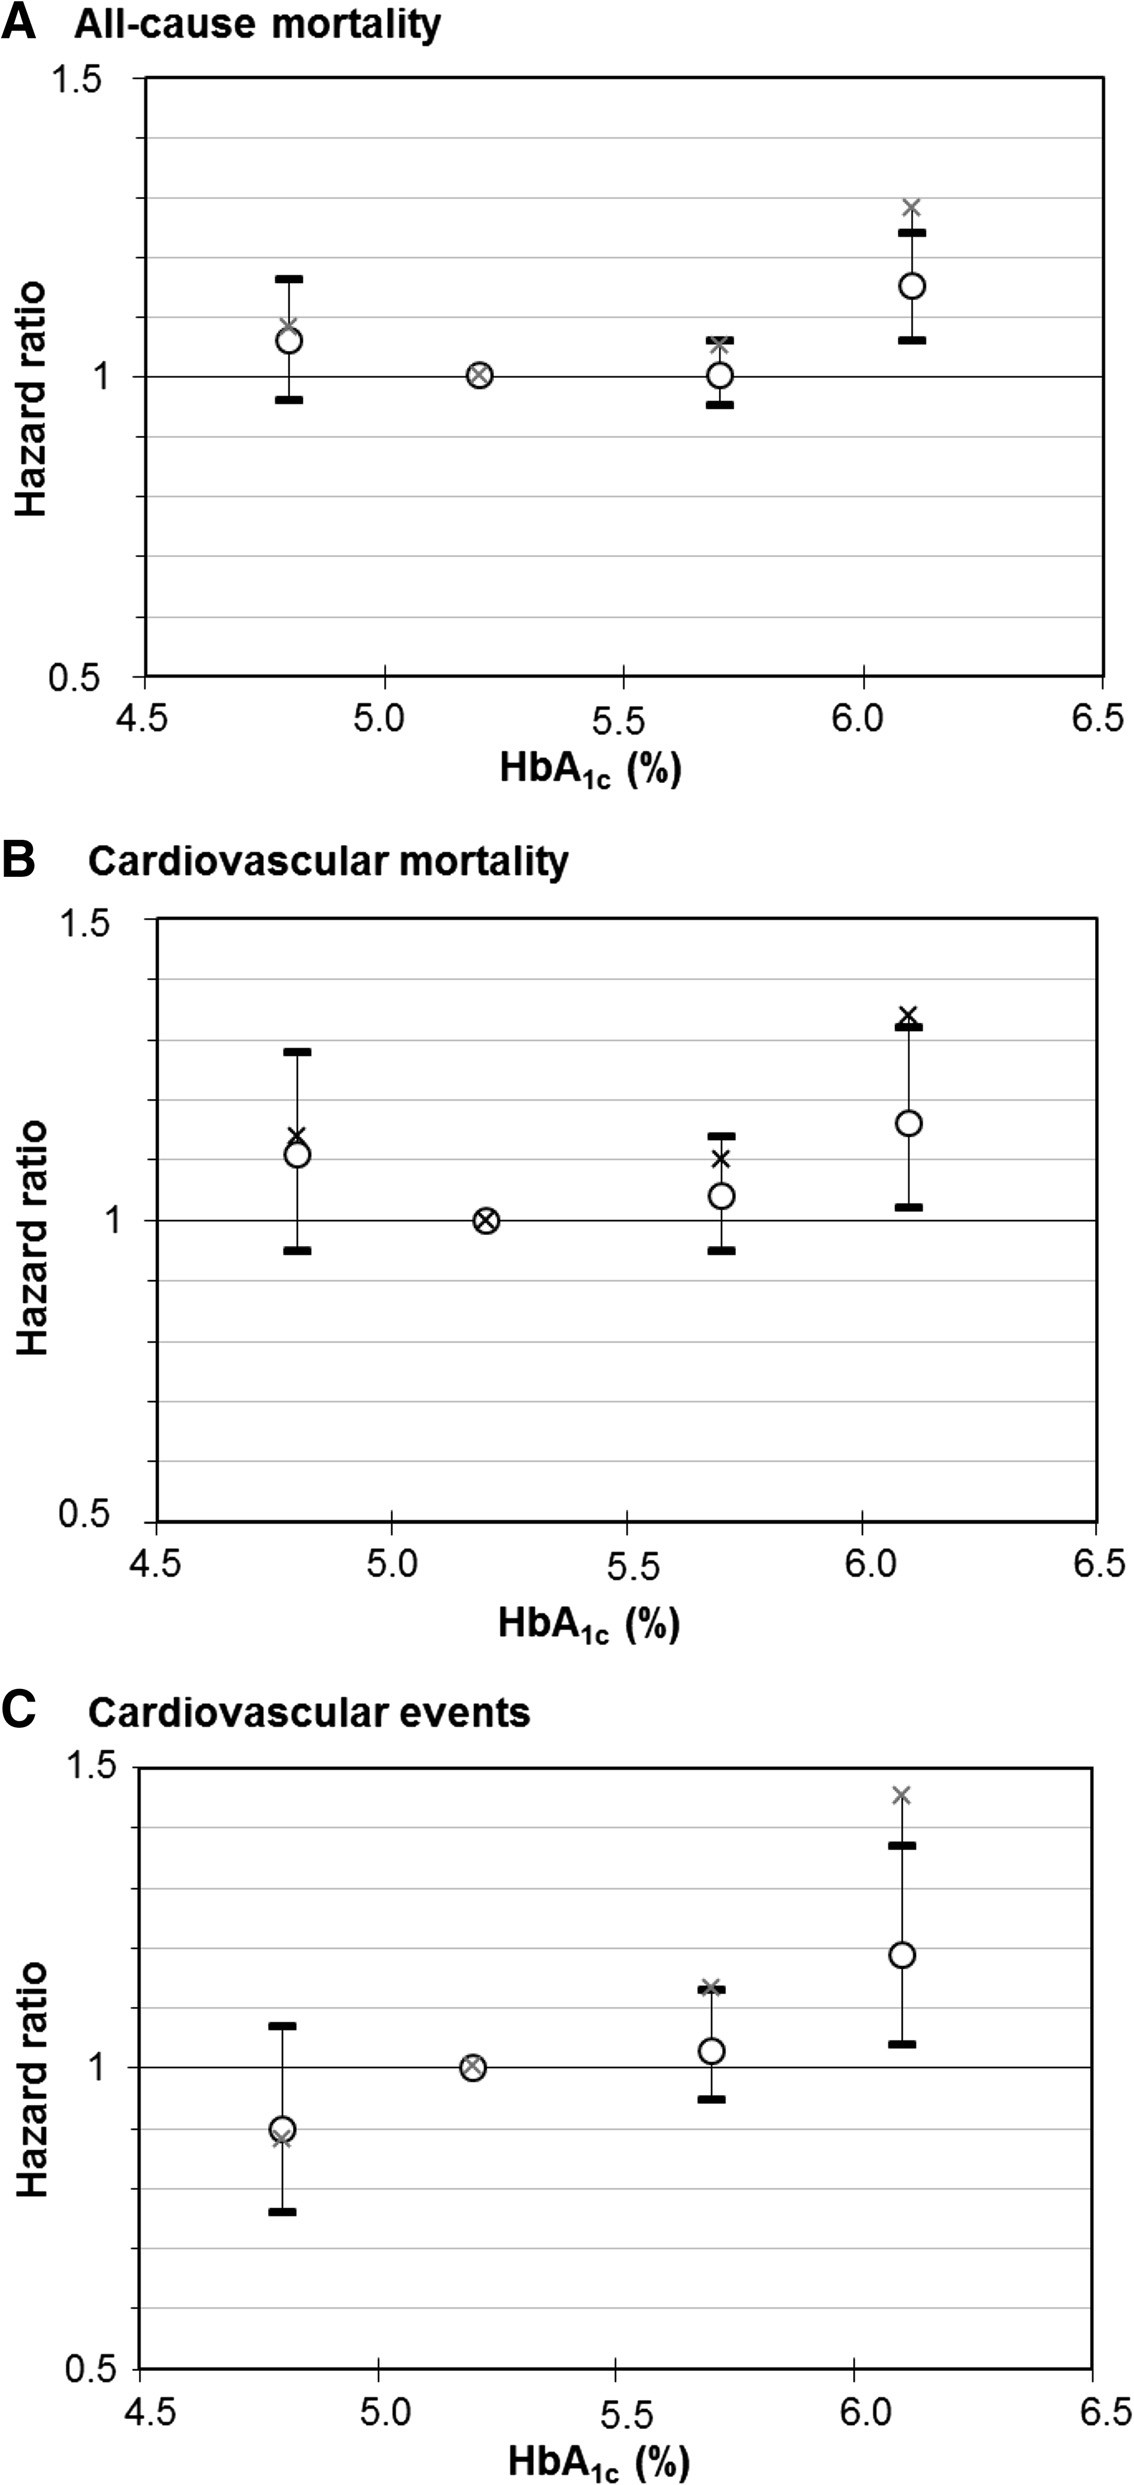 """Dose-response relationship of meta-analyzed associations of HbA<sub>1c</sub> levels with (a) all-cause mortality, (b) cardiovascular mortality and (c) cardiovascular outcomes in subjects without diabetes mellitus with increasing adjustment for potential confounders. Crosses, point estimates of """"simple"""" model; circles with 95 % confidence intervals, effect estimates of """"full"""" model. Reference group: HbA<sub>1c</sub> 5.0 to <5.5 % (31 to <37 mmol/mol)"""